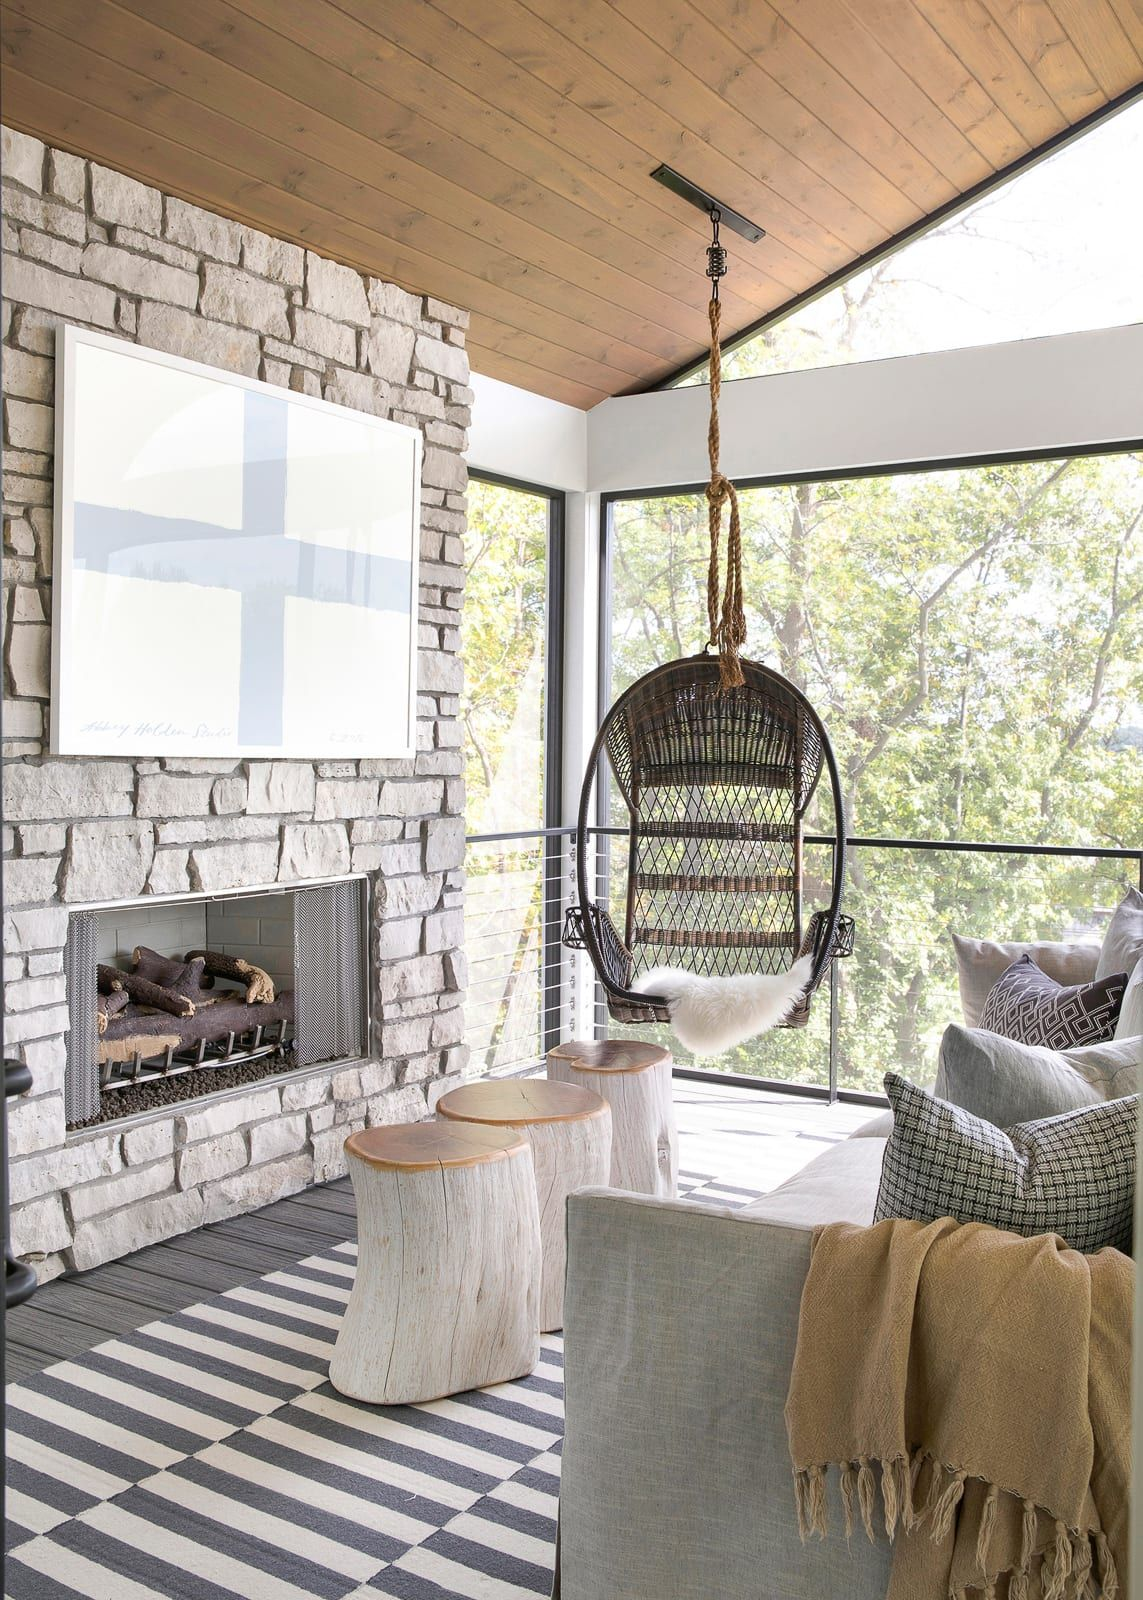 sp3 Great ideas for screened porches that can inspire you